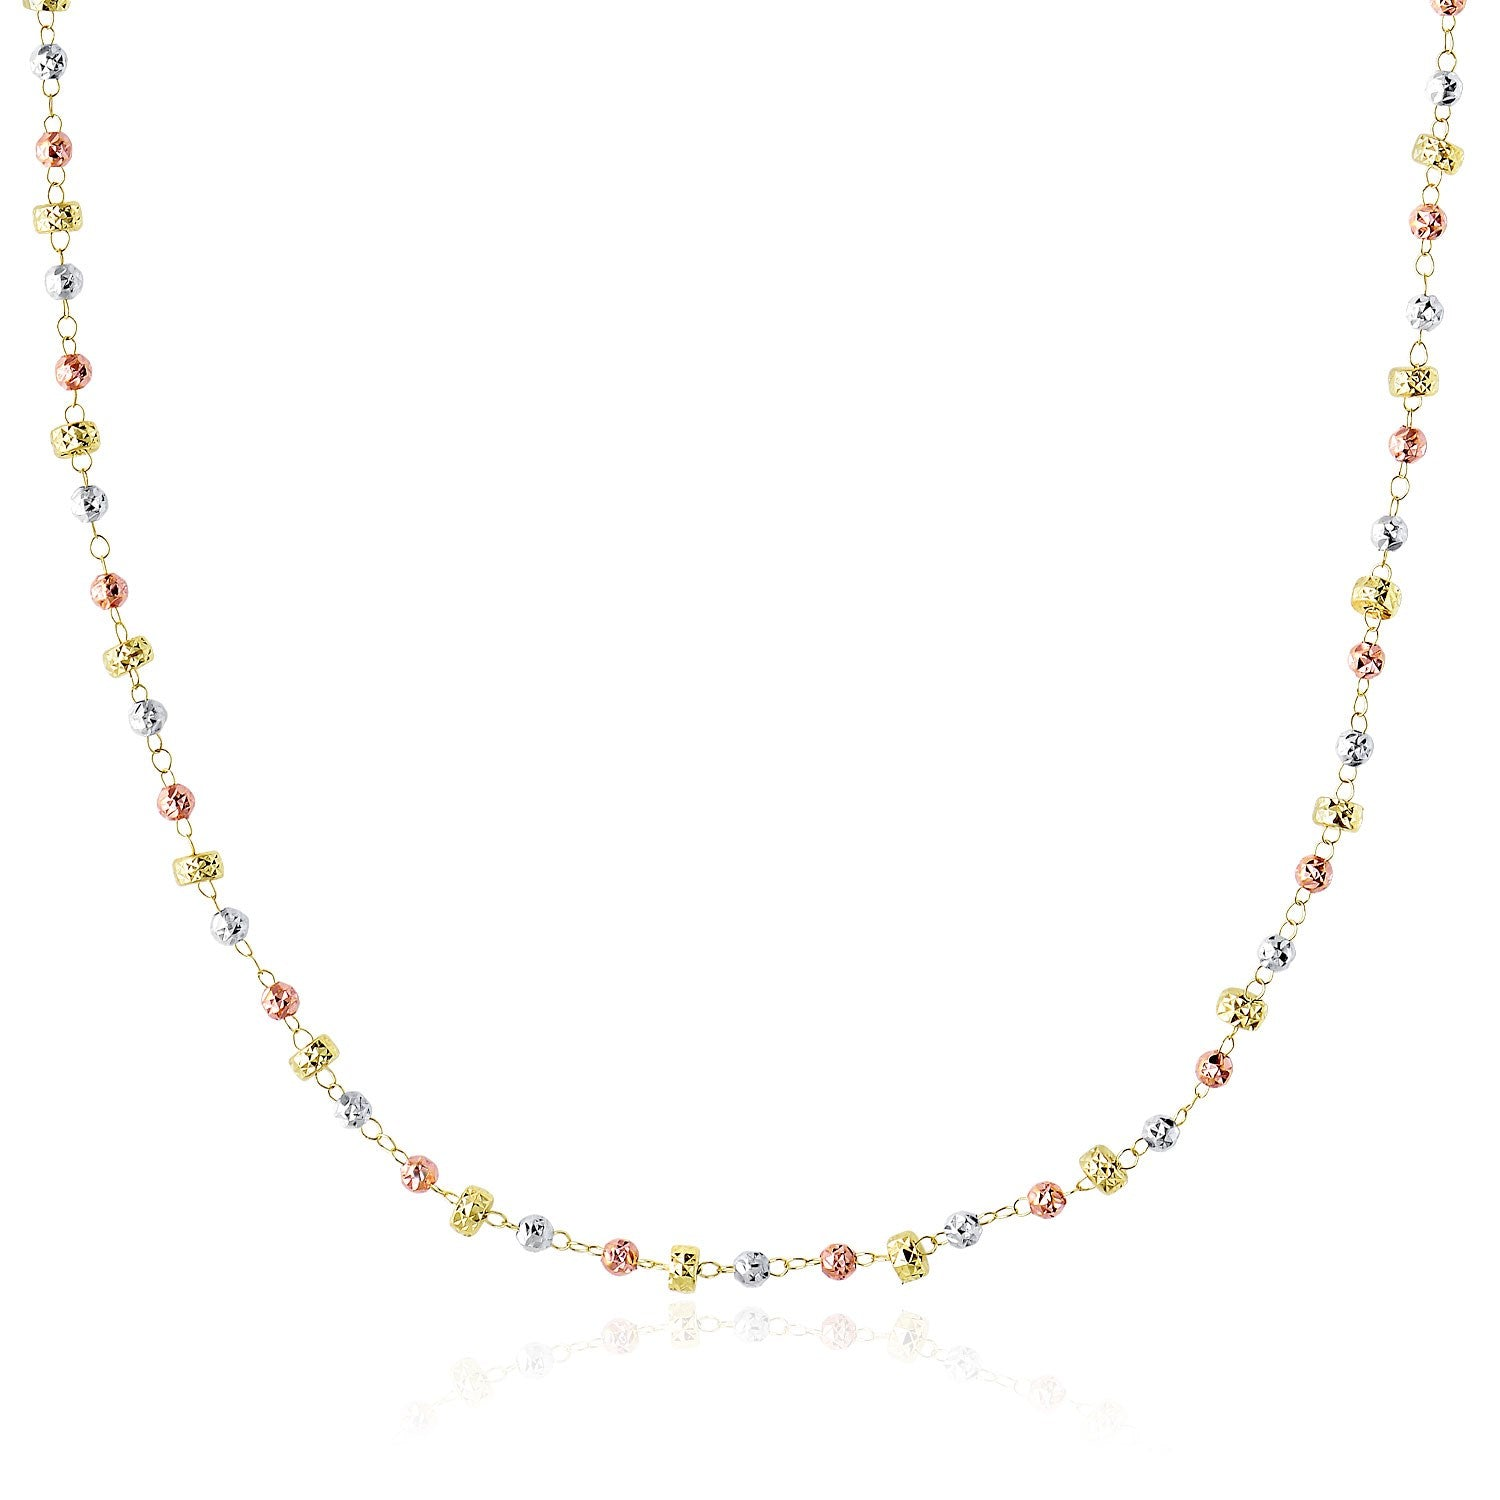 14K Tri-Color Gold Necklace with Textured Round and Barrel Bead Links